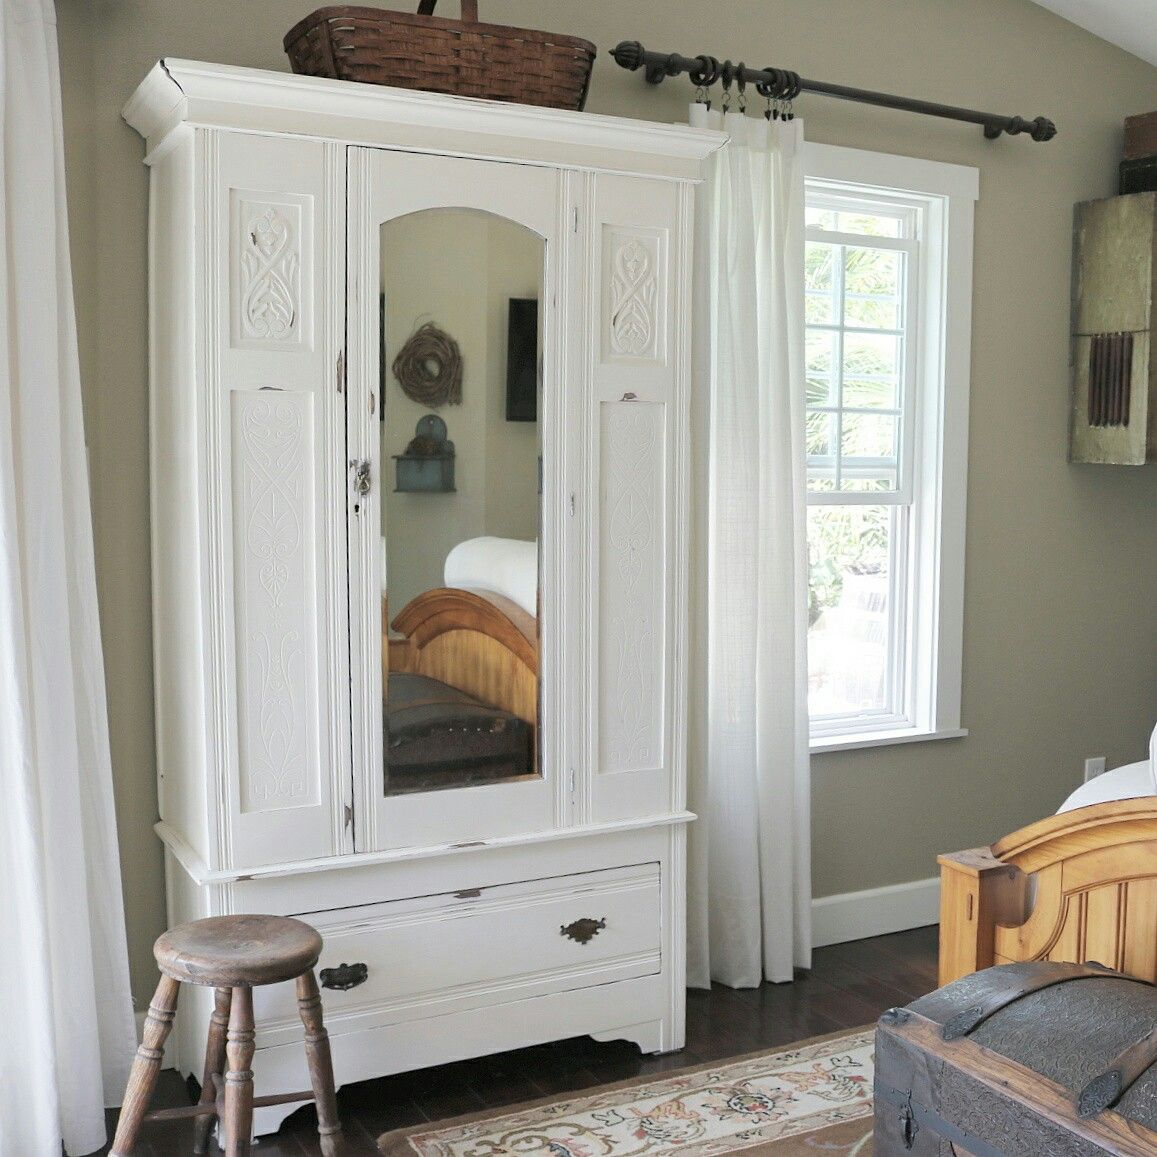 Farmhouse - Antique Cupboard at home on SweetCreek